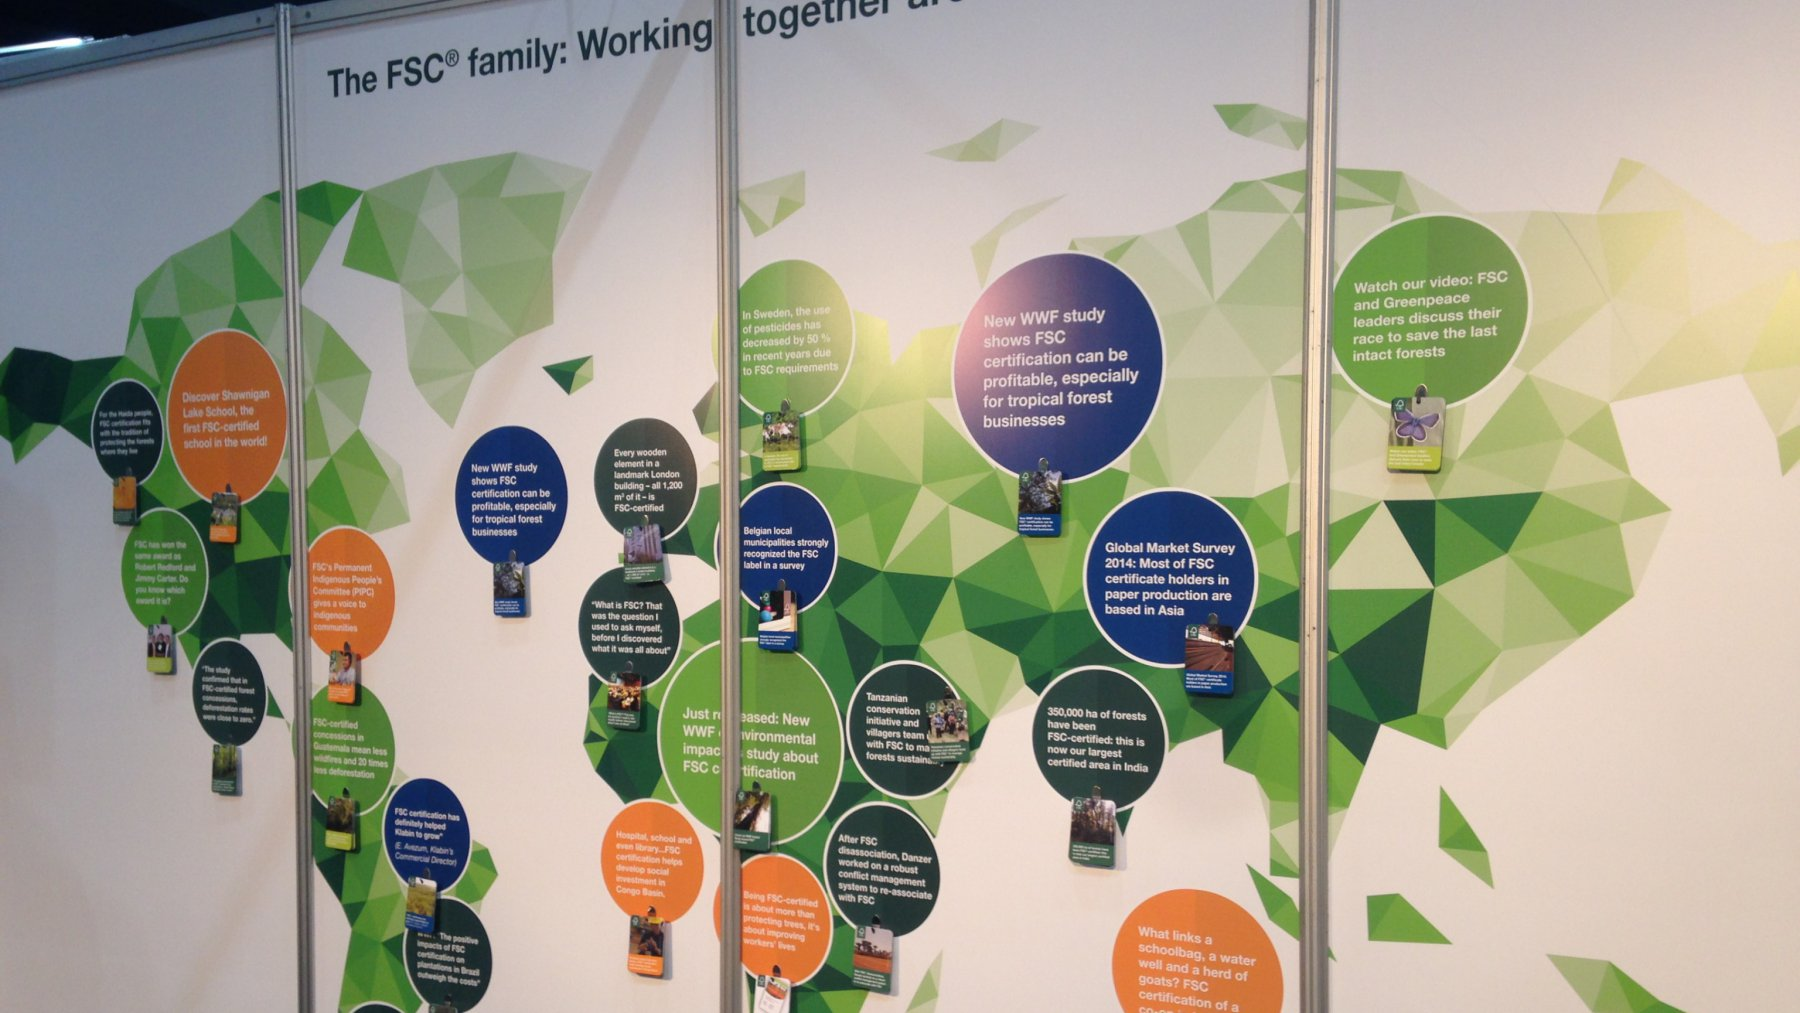 The FSC family: Working together around the world